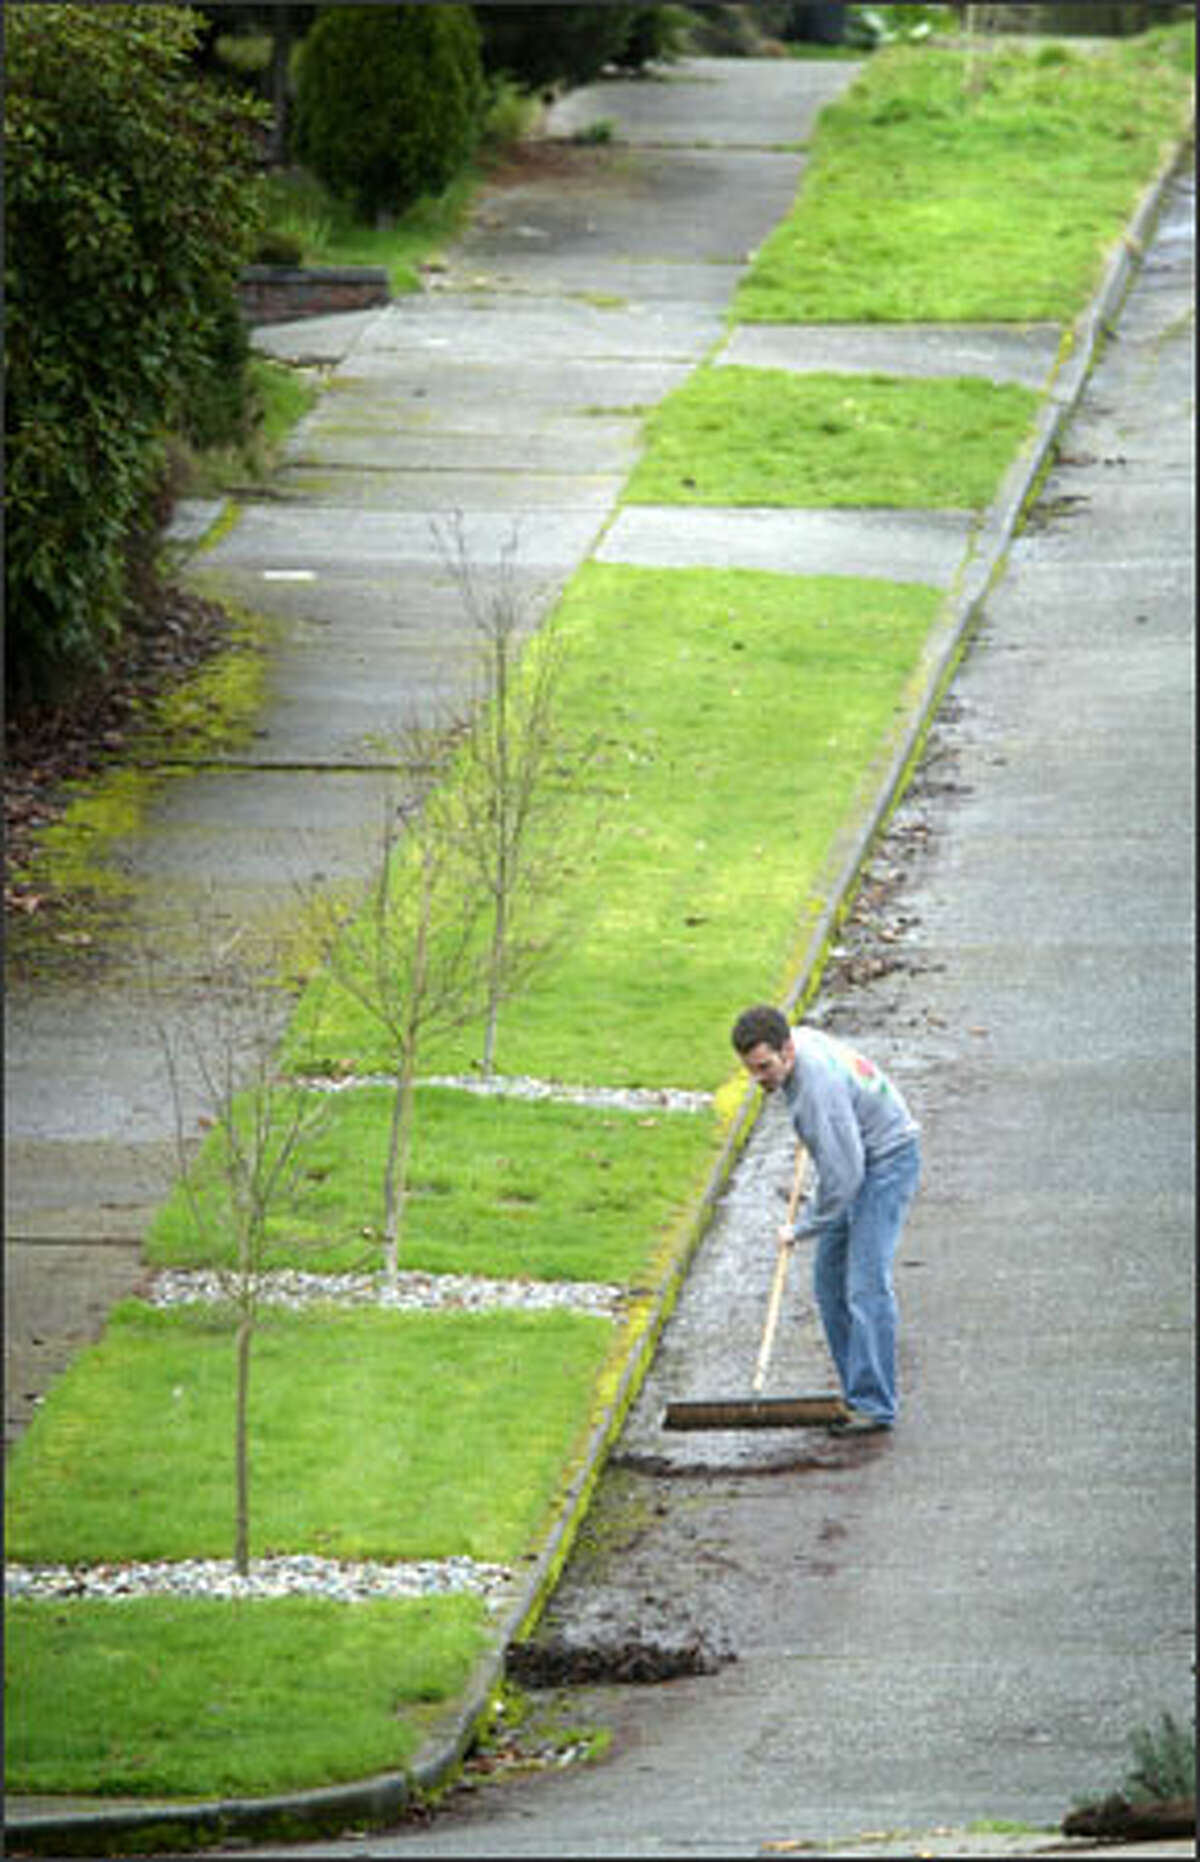 Chad Thompson takes advantage of a mild day to do some yard work and curbside cleanup in front of his home on South Oregon Street near Lake Washington in Seattle.